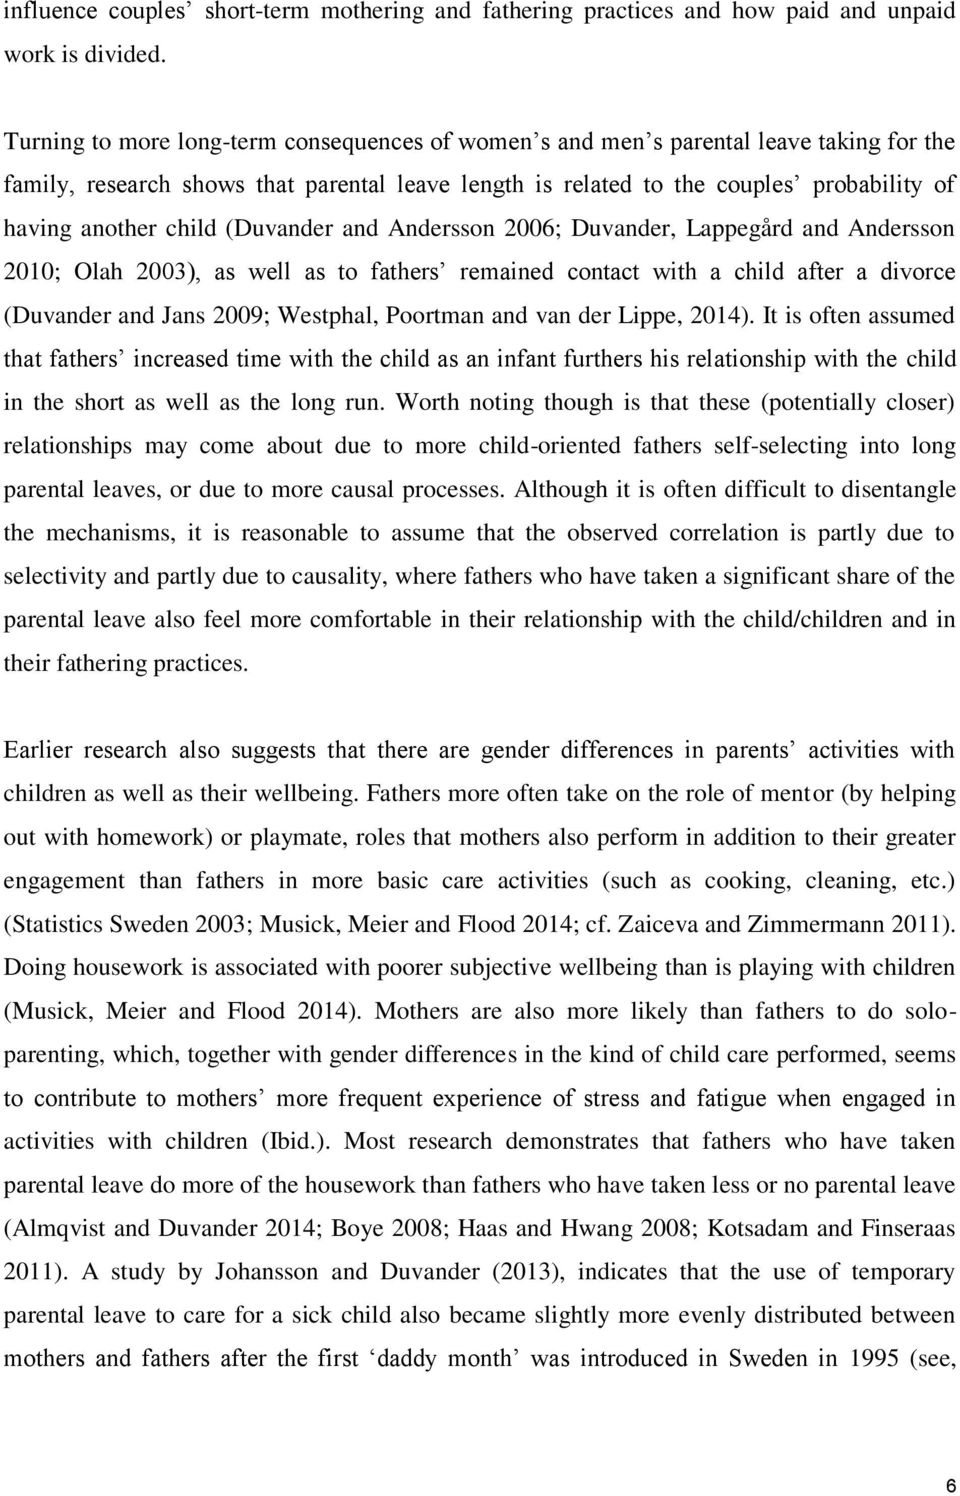 child (Duvander and Andersson 2006; Duvander, Lappegård and Andersson 2010; Olah 2003), as well as to fathers remained contact with a child after a divorce (Duvander and Jans 2009; Westphal, Poortman